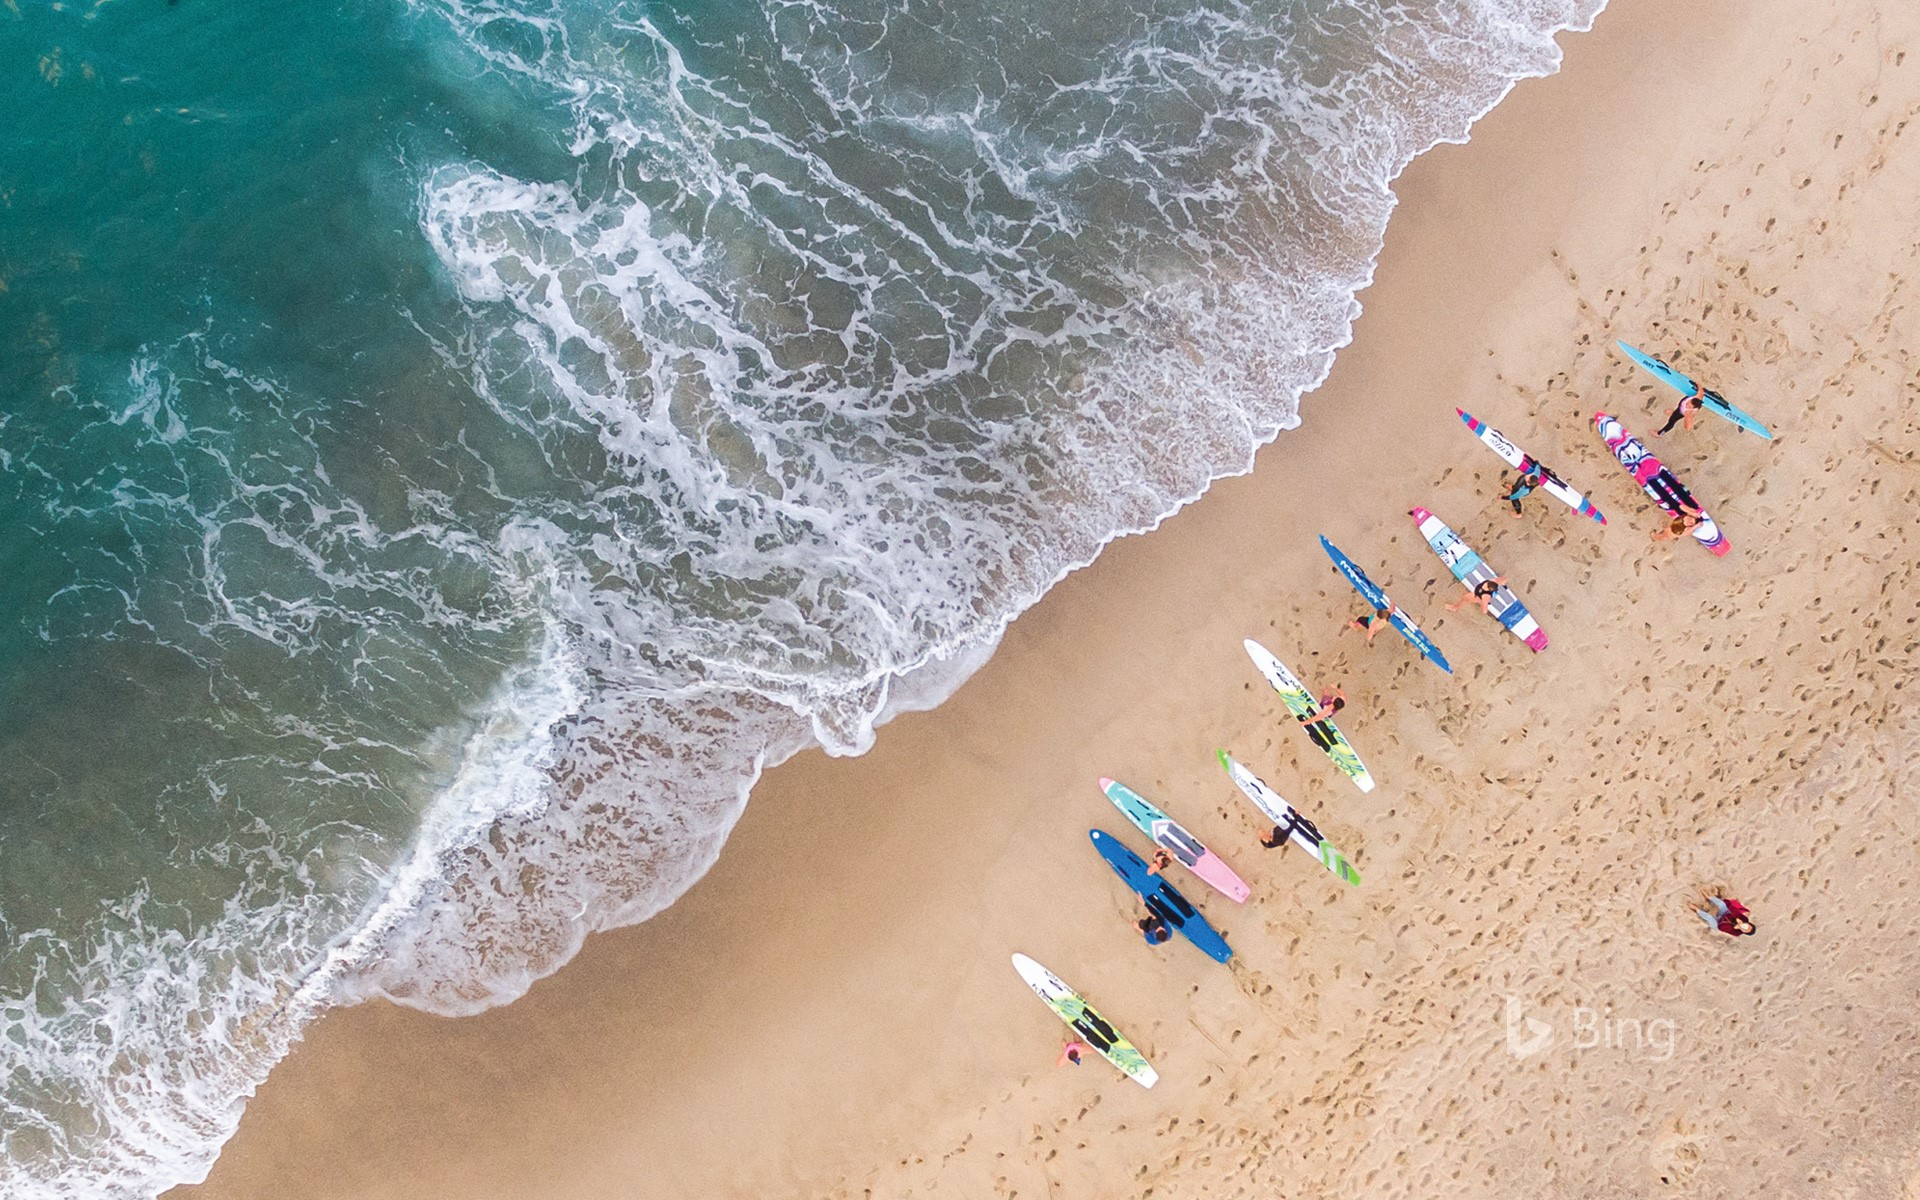 Surfers at Bronte Beach, near Sydney, Australia